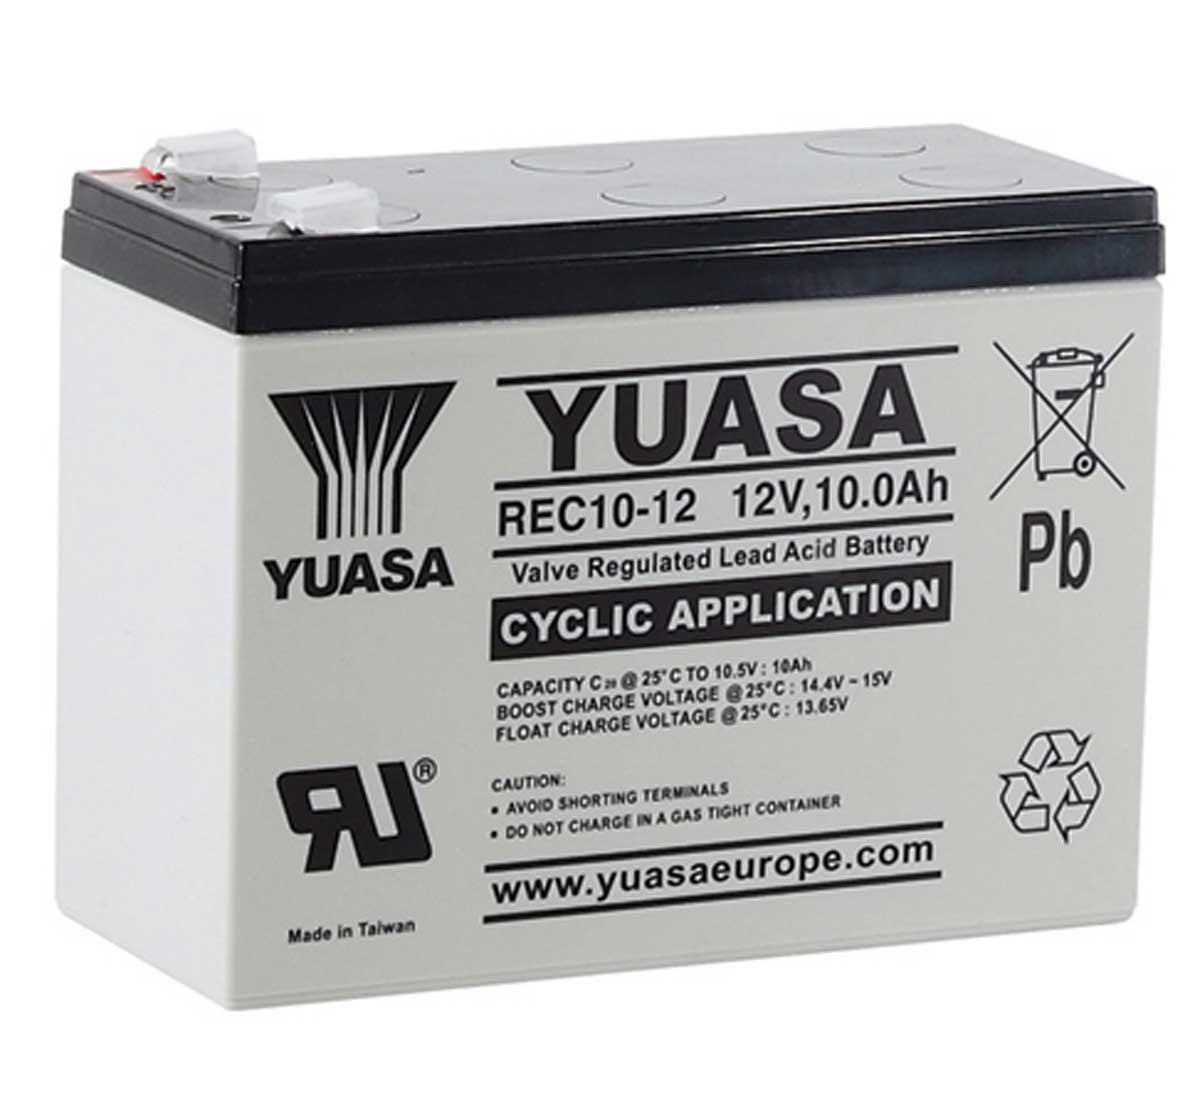 Yuasa REC10-12 12V 10Ah Rechargeable Cyclic Battery